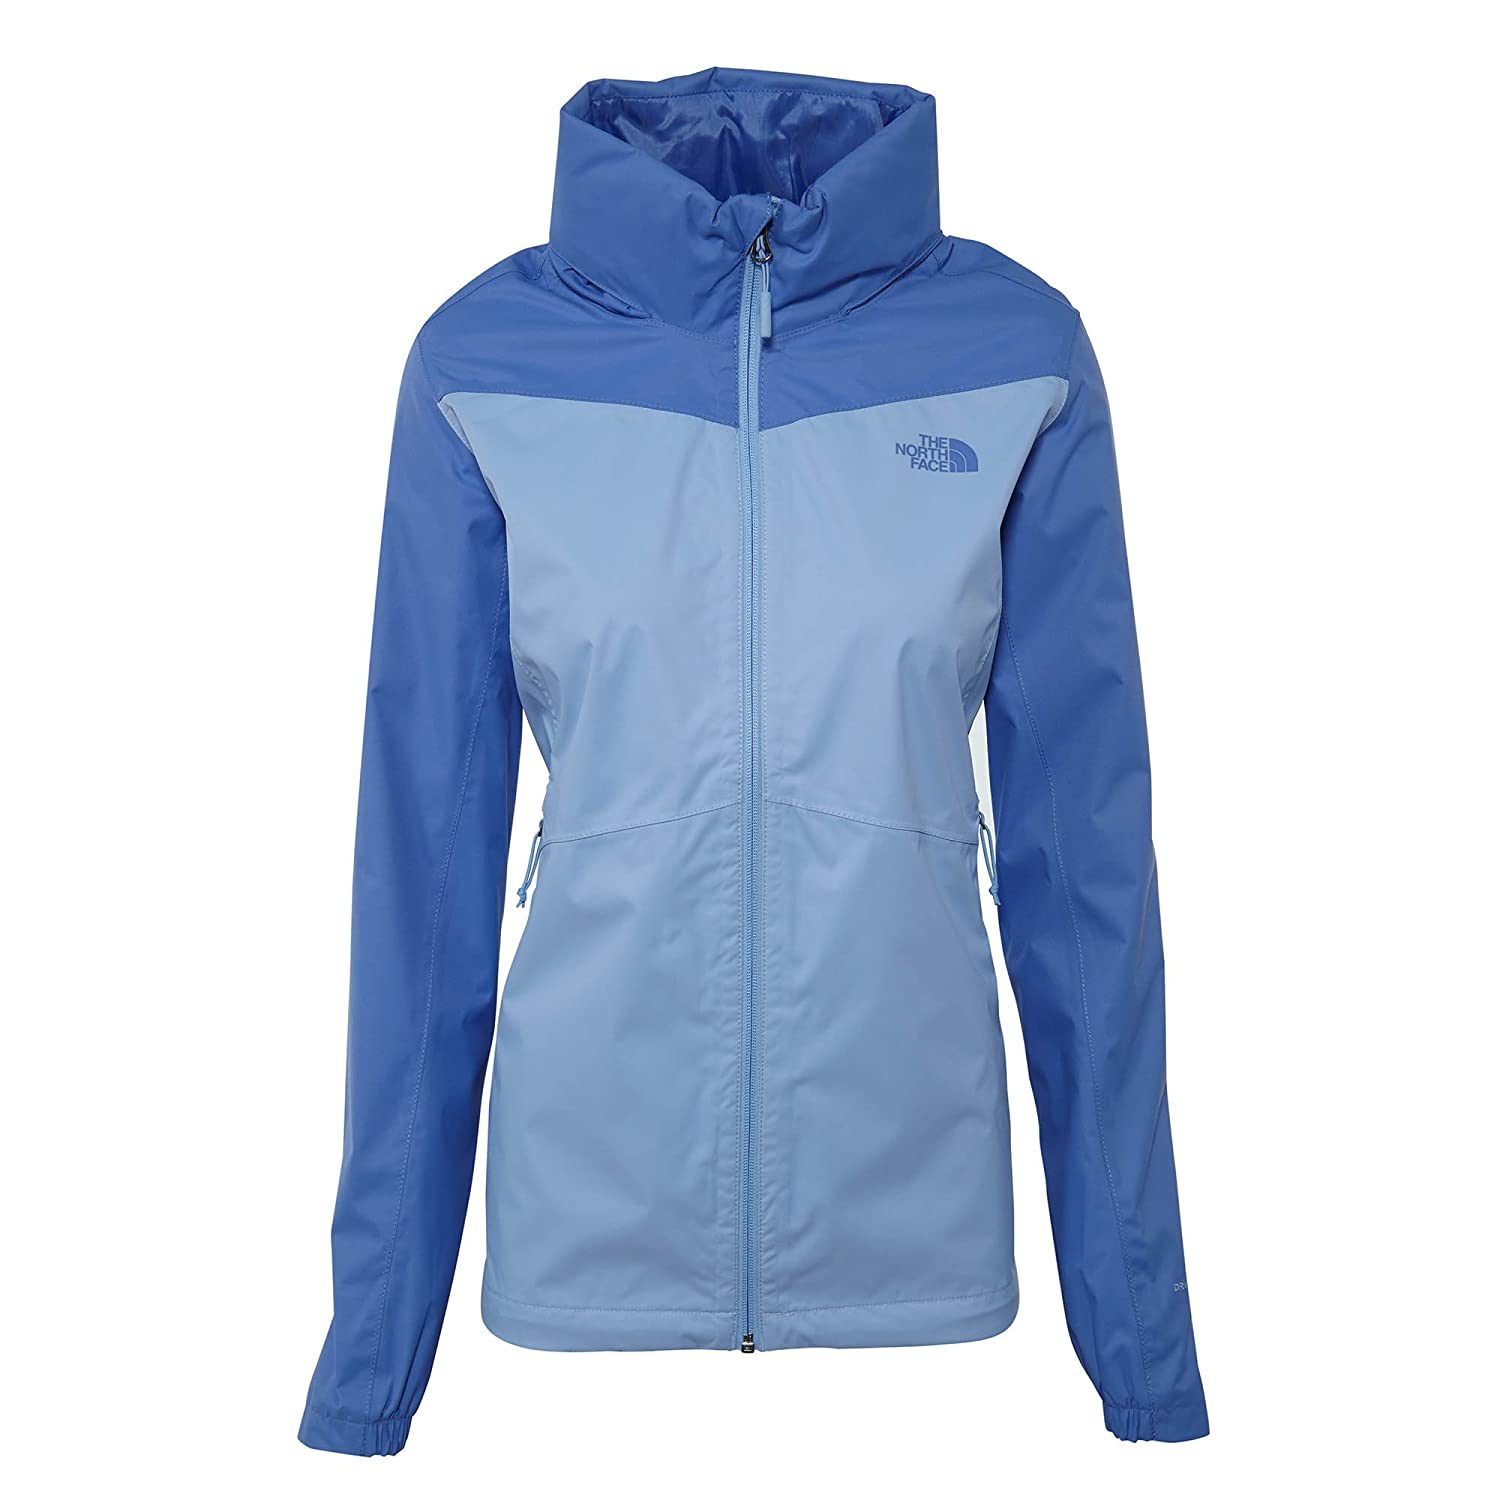 The North Face Women's Resolve Plus Jacket  Collar bluee and Stellar bluee  XL